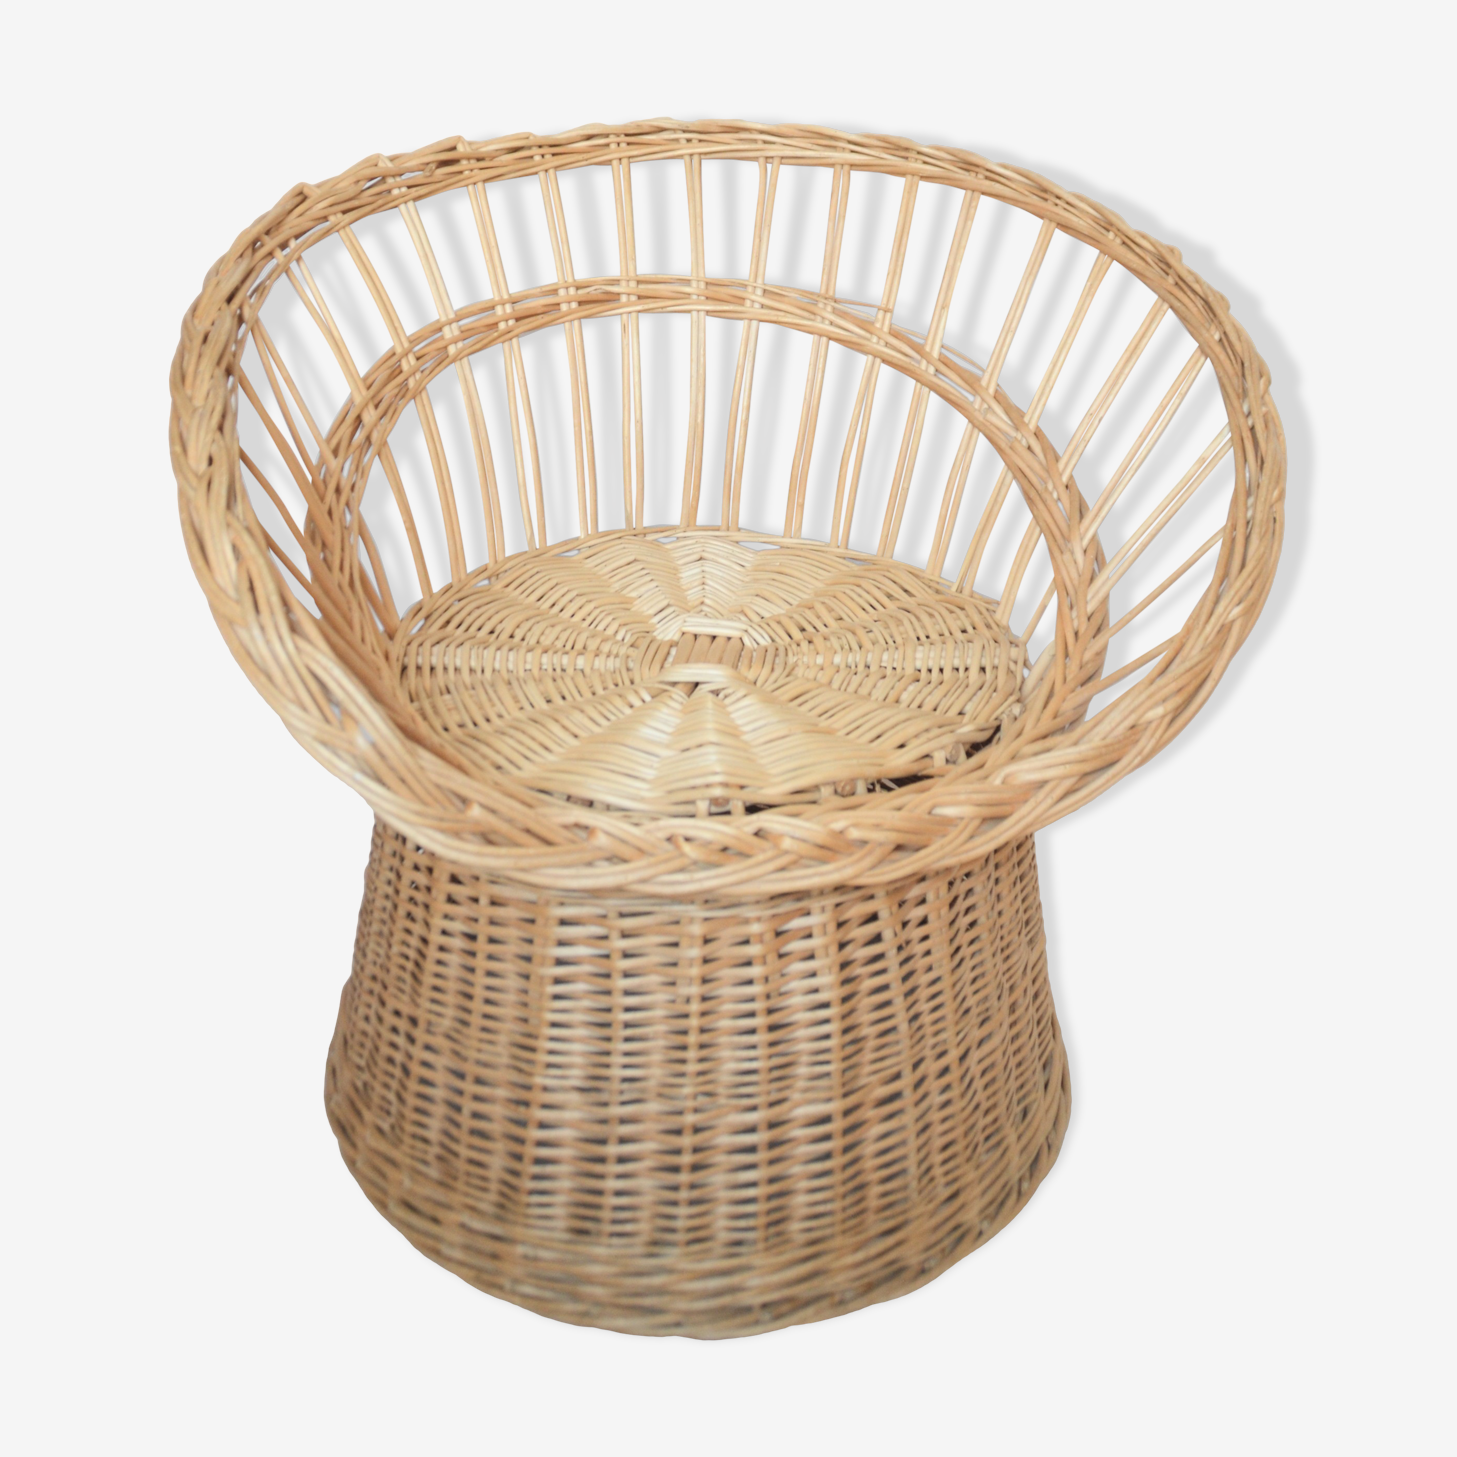 Adult basket rattan chair